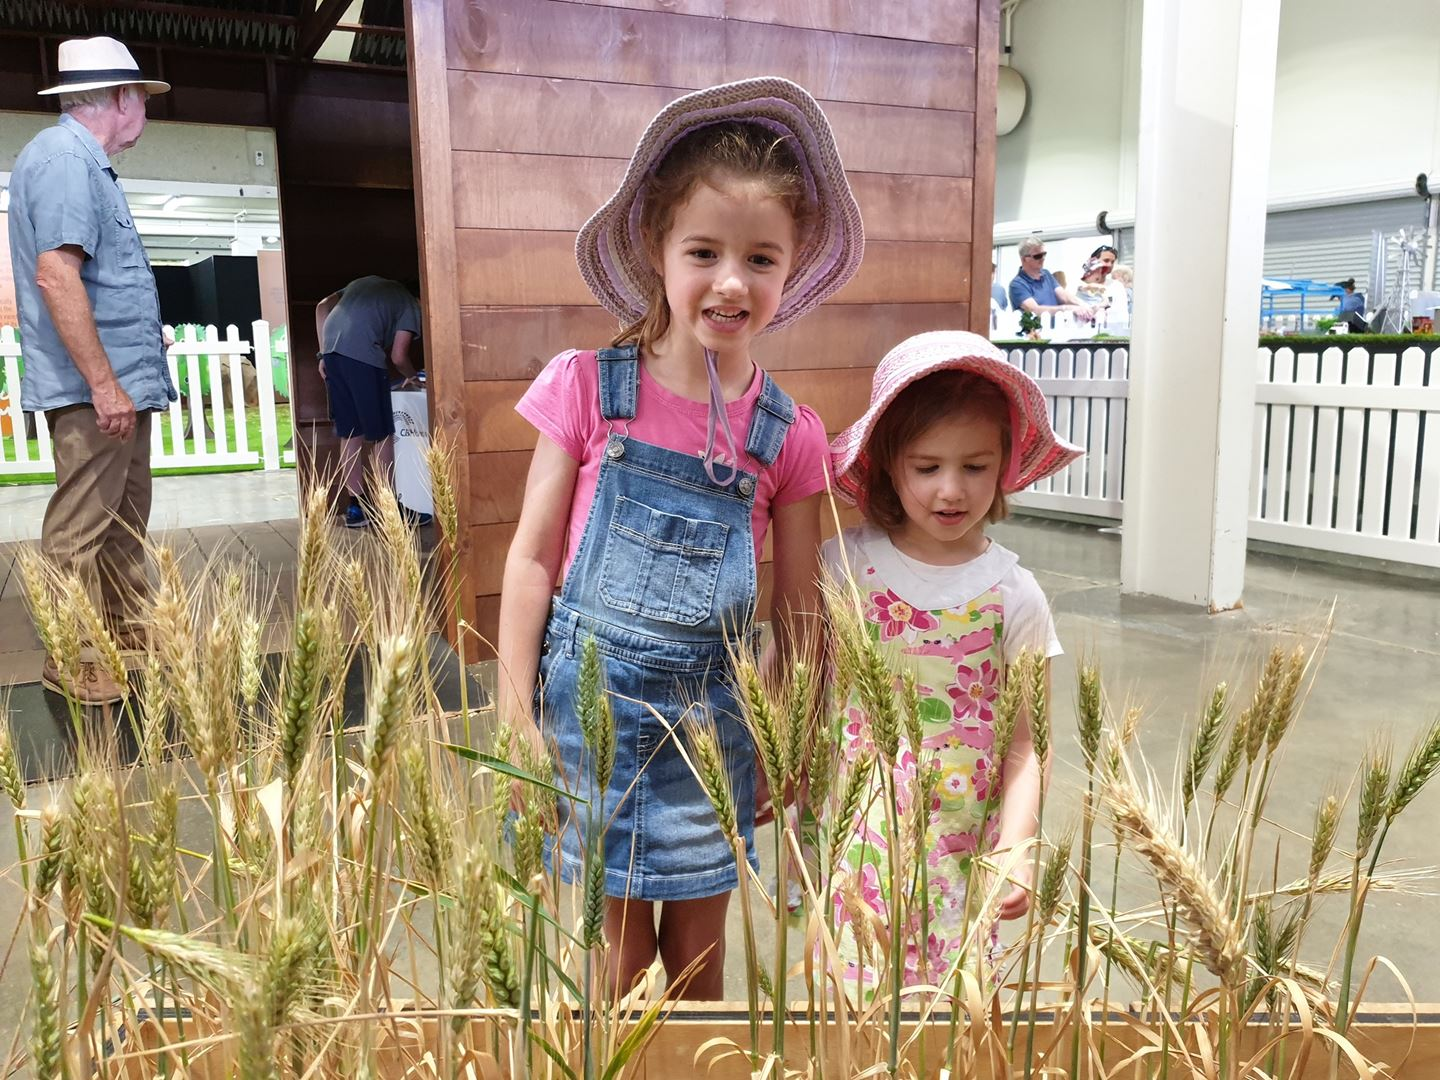 Two young girls wearing floral hats stand behind a planter box of wheat smiling at the camera